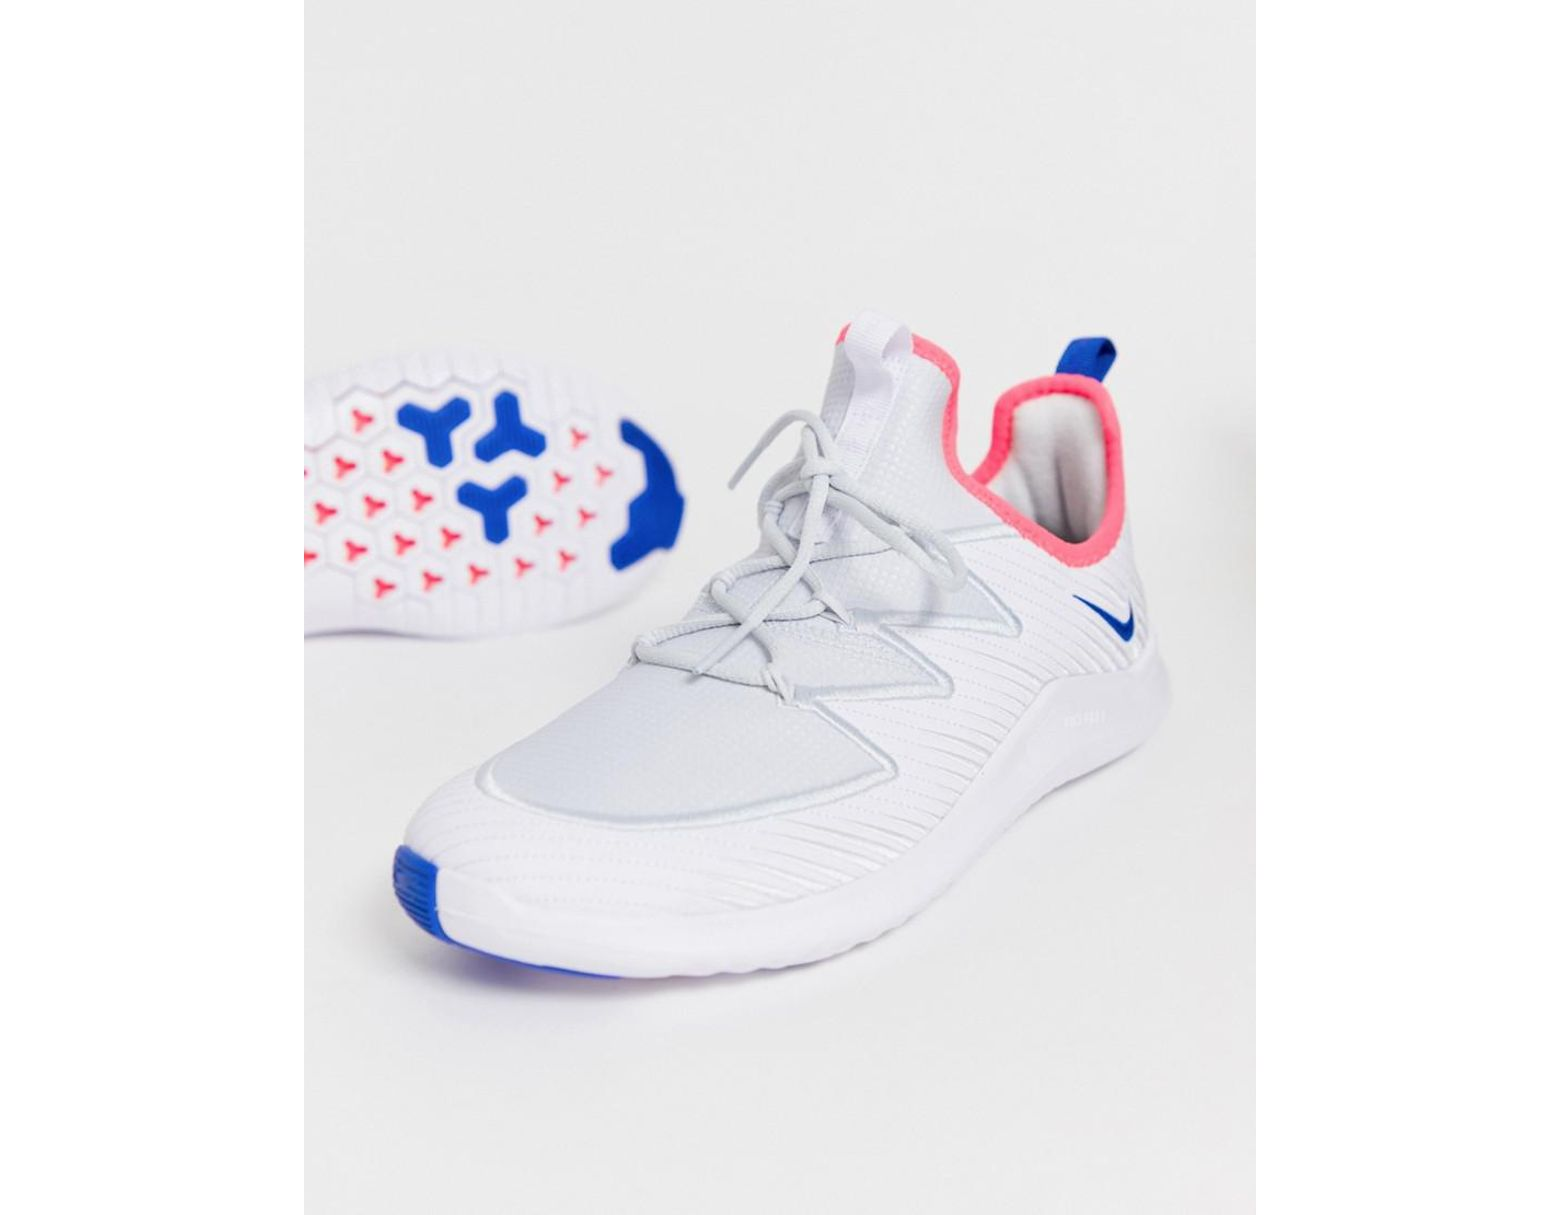 4b6435ddbcd5 Nike Free Tr 9 Trainers In White in White - Lyst